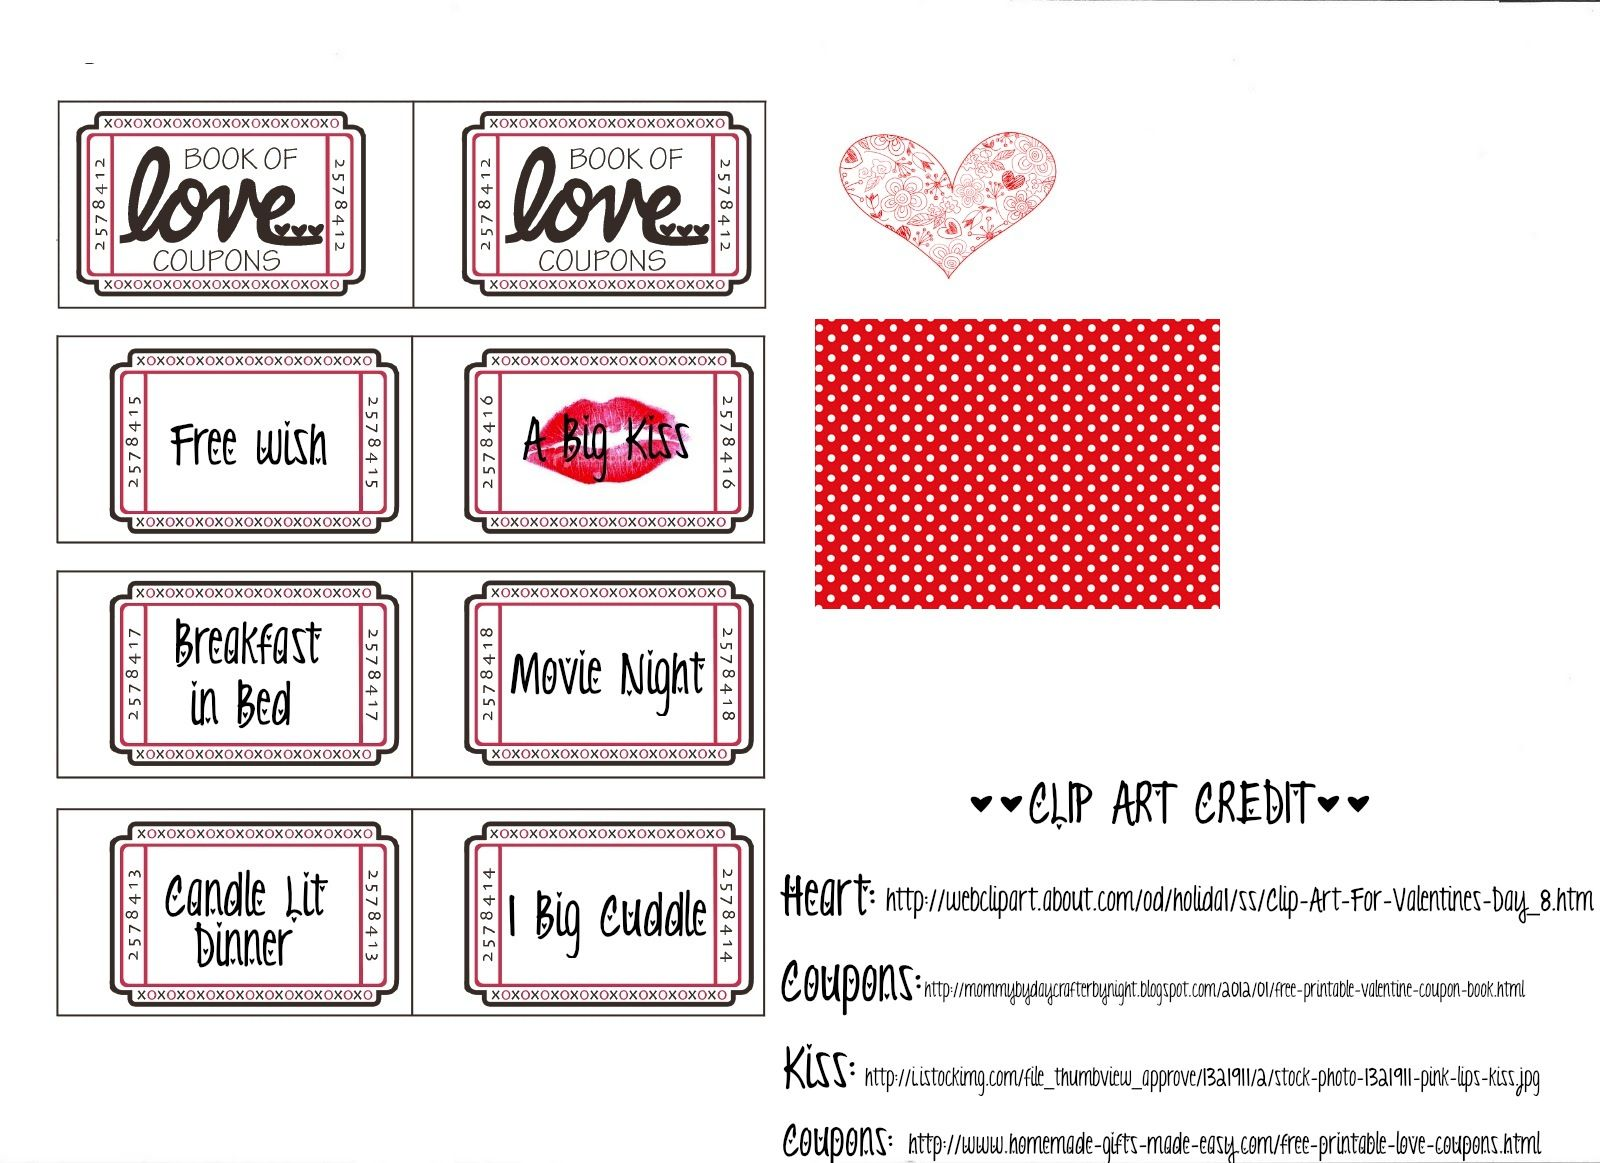 Boyfriend Coupon Book Ideas  ValentineS Day    Diy